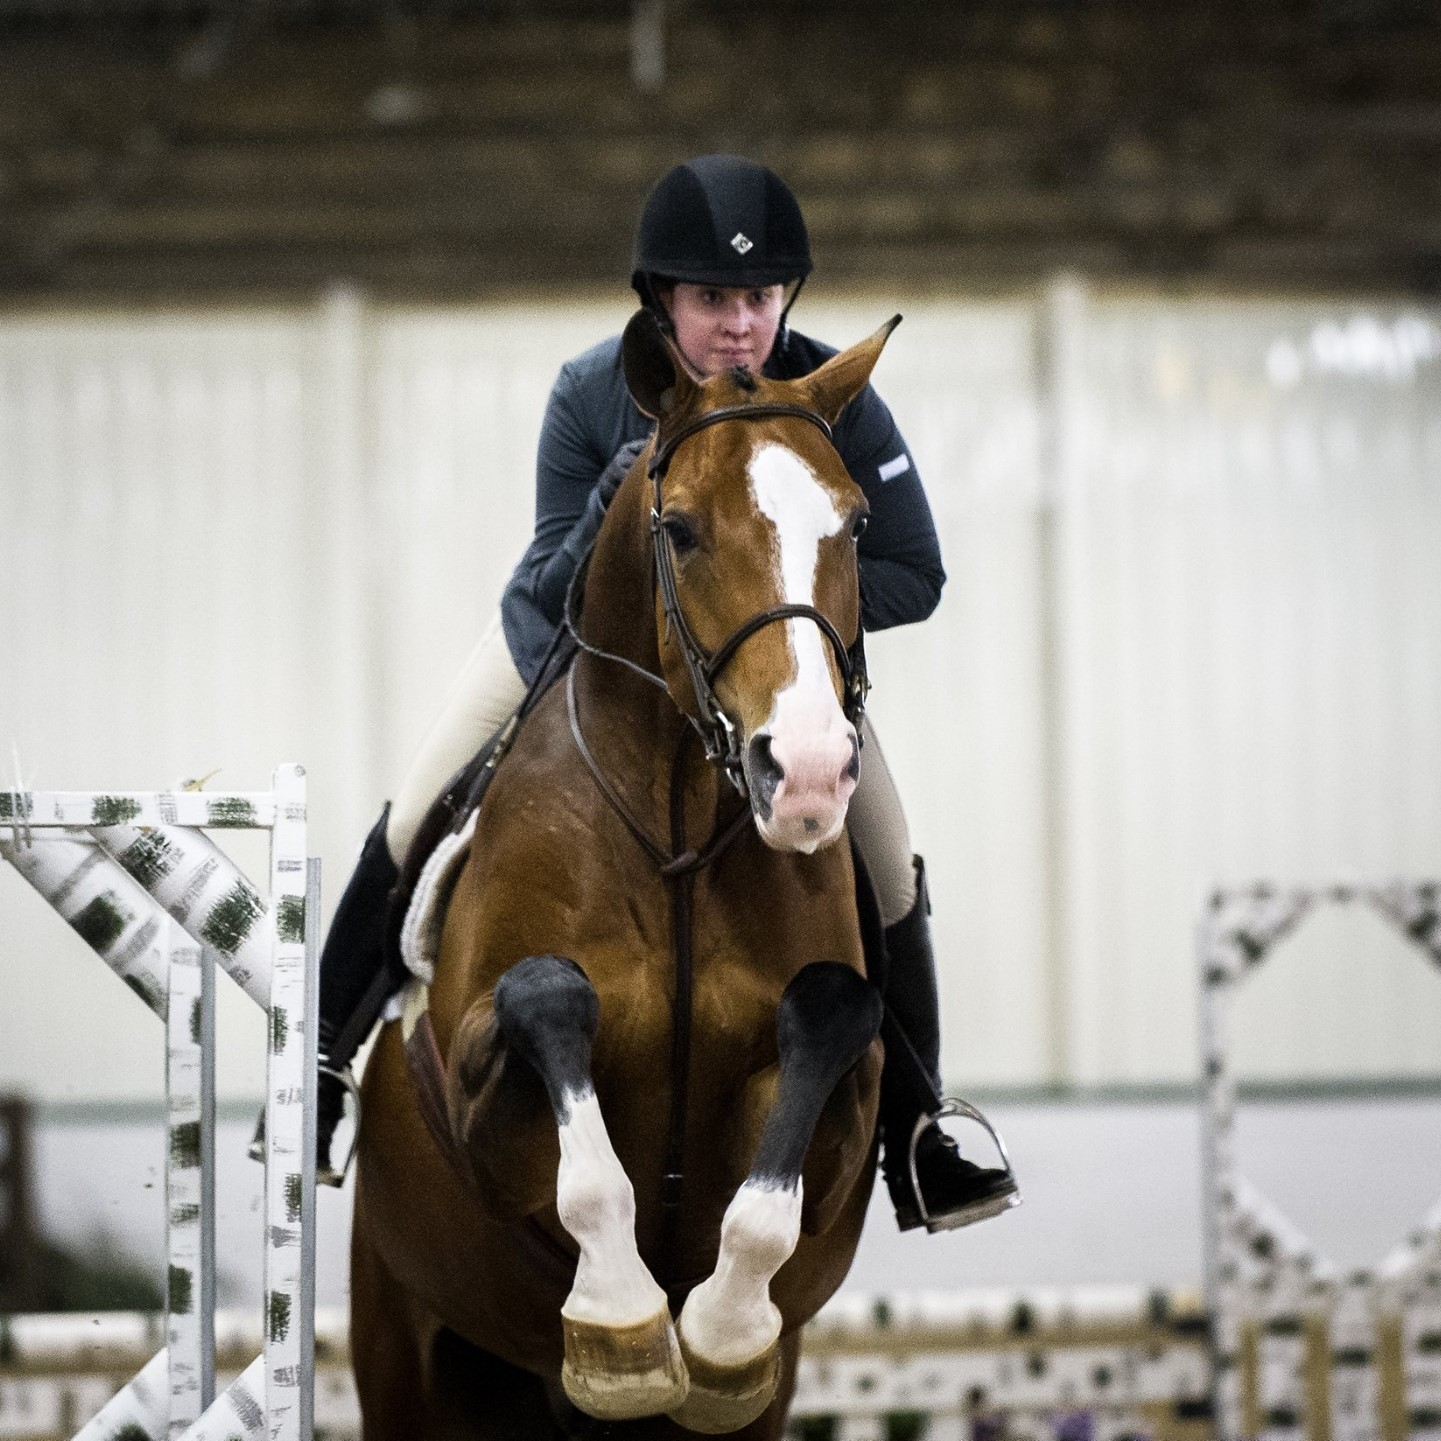 Lauren Robishaw and Bon Vivant making the debut in the Amateur Adult Hunters at Ledges Winter Series 2016